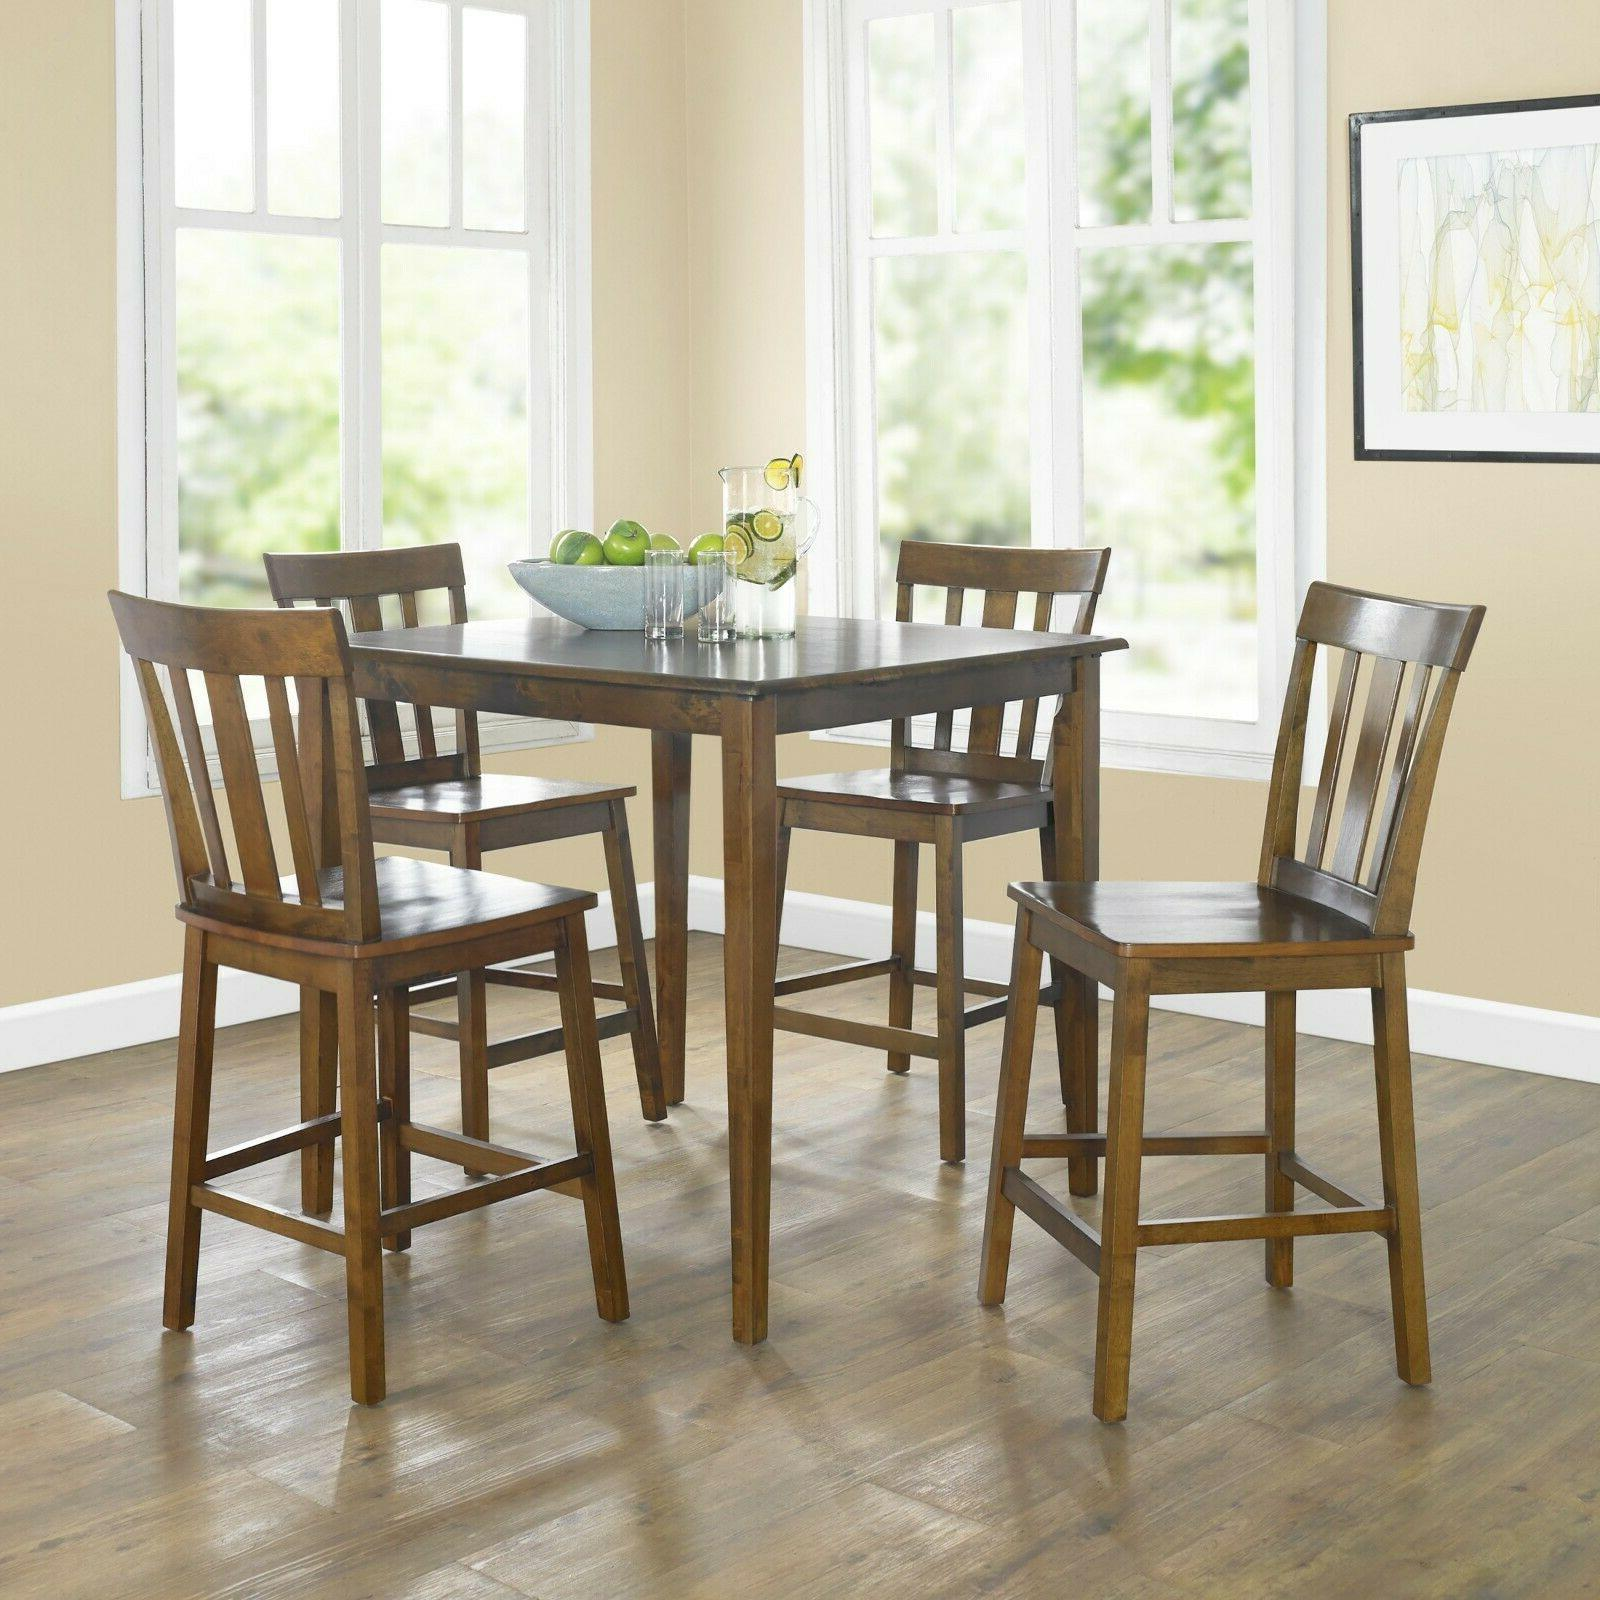 dining room table set small wooden counter